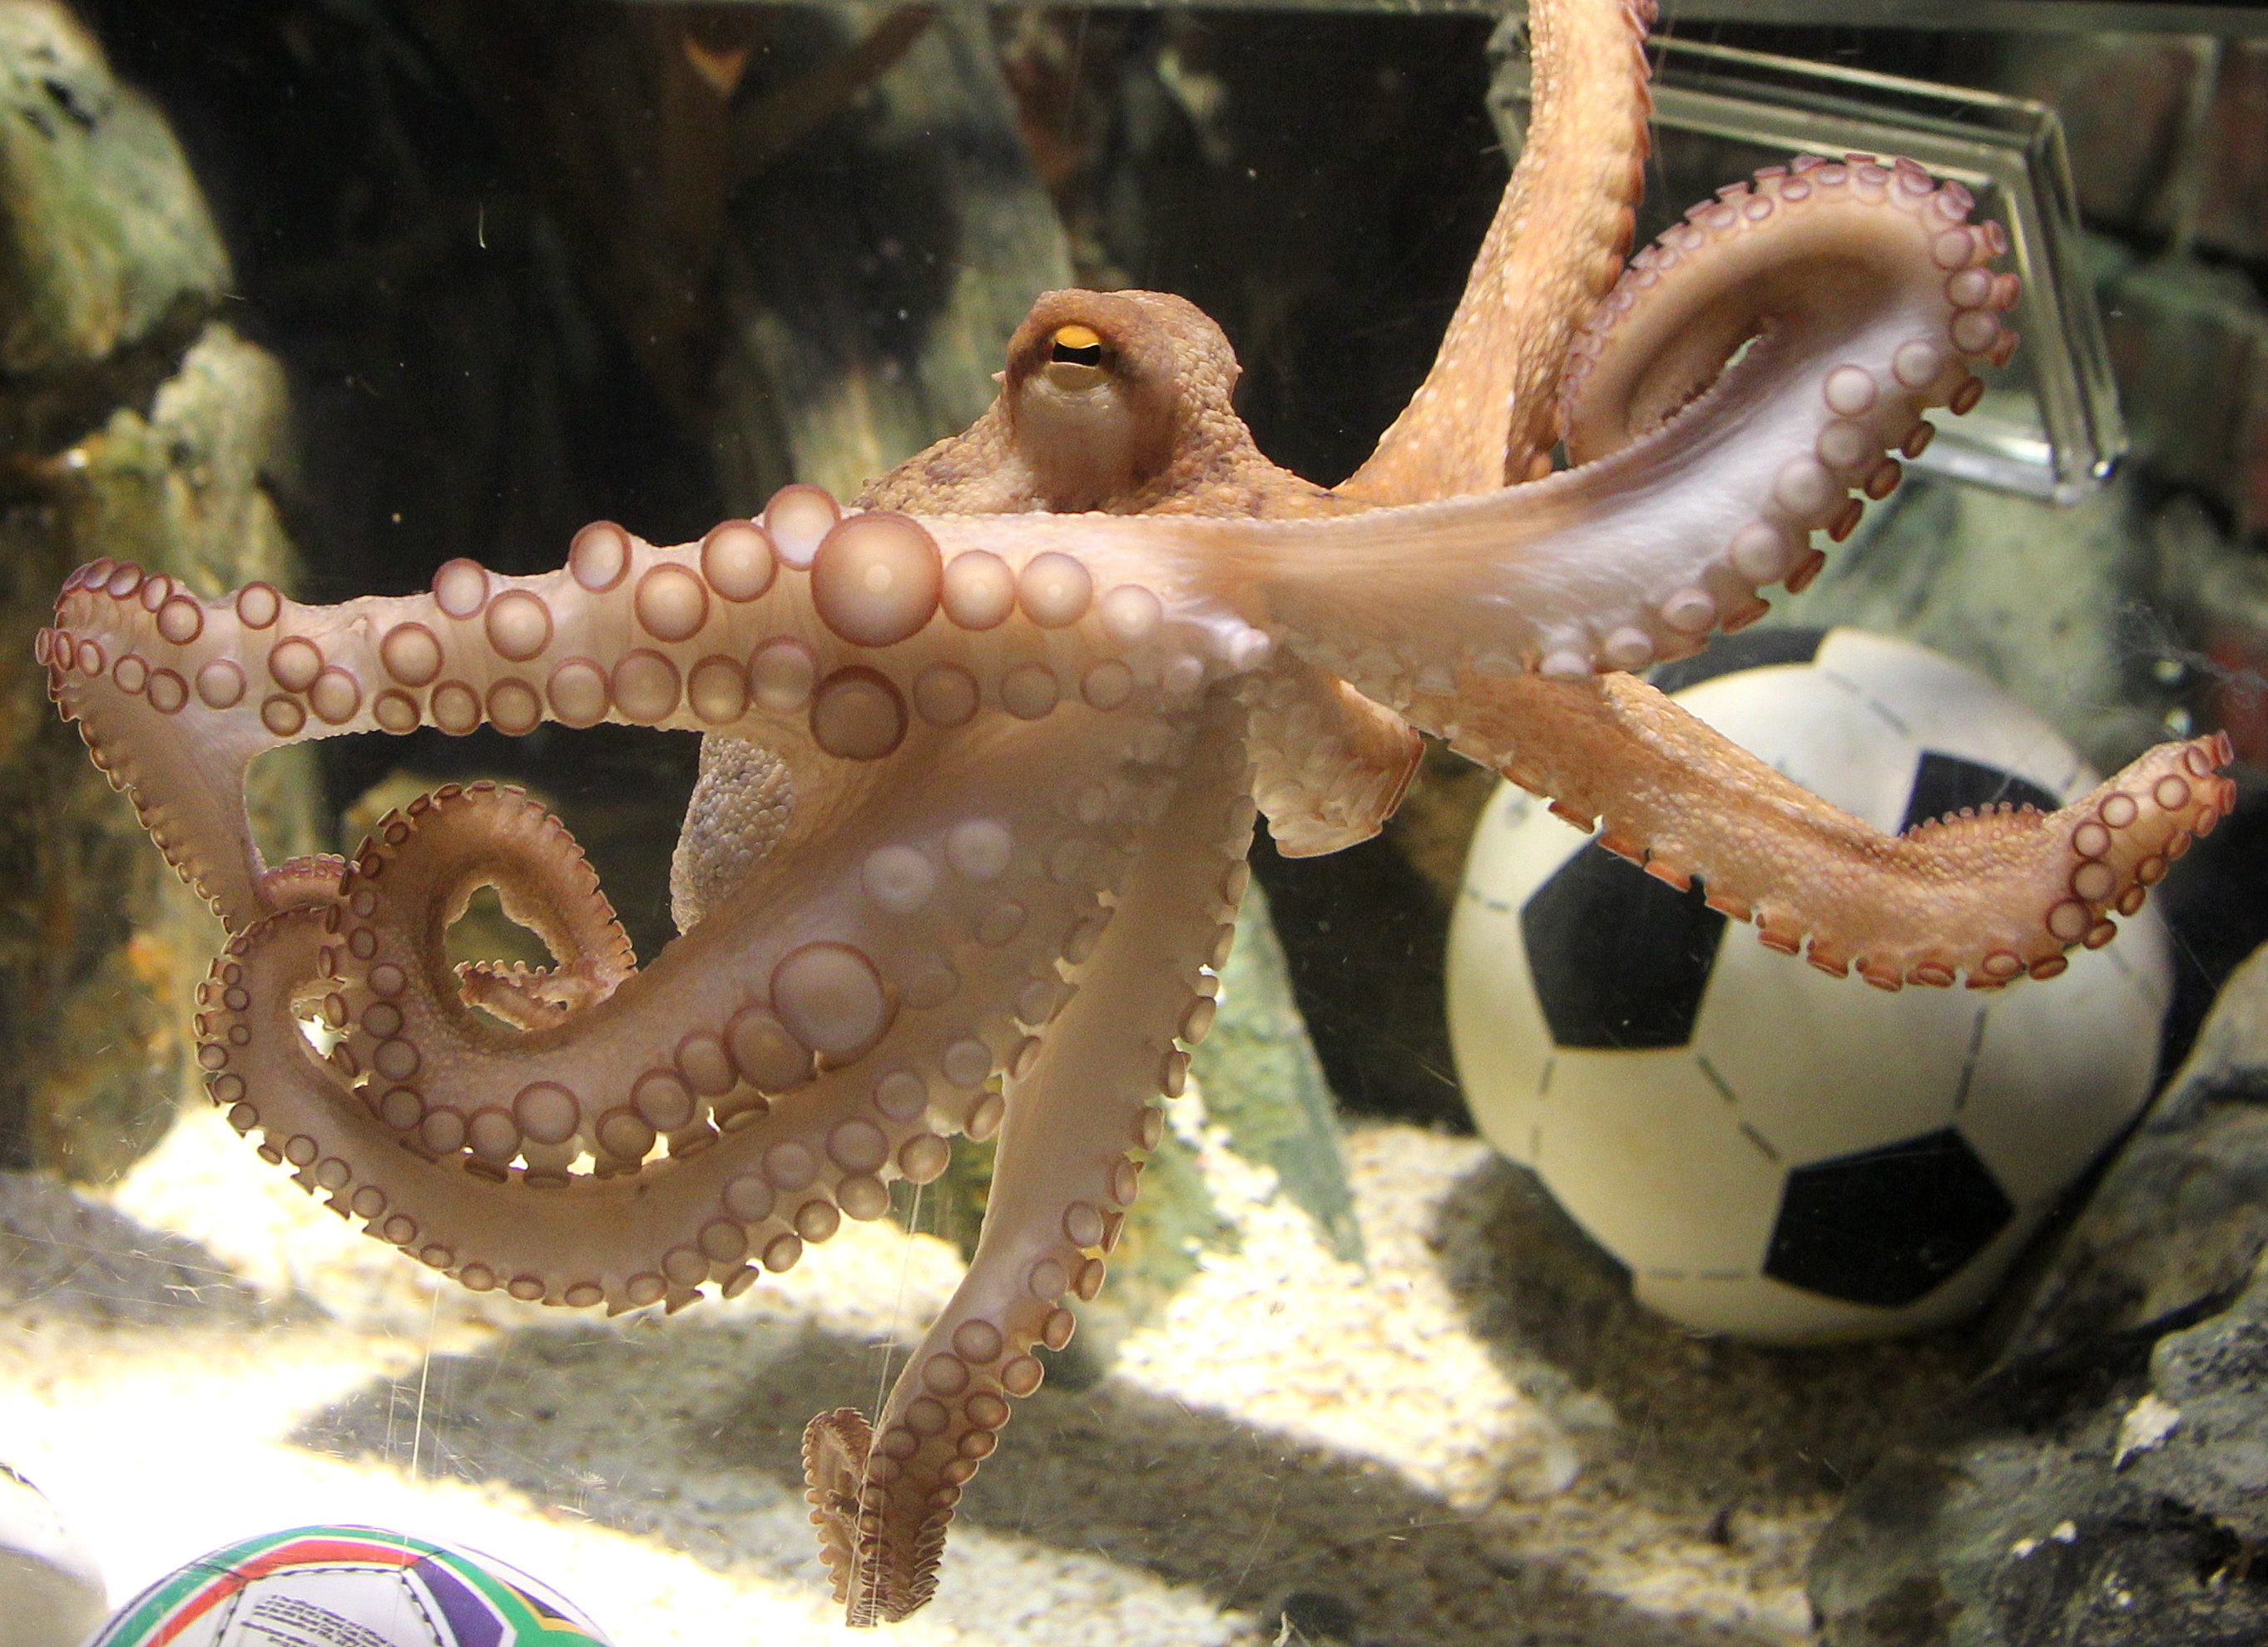 'Psychic' Octopus That Predicted World Cup Matches Has Been Killed For Food